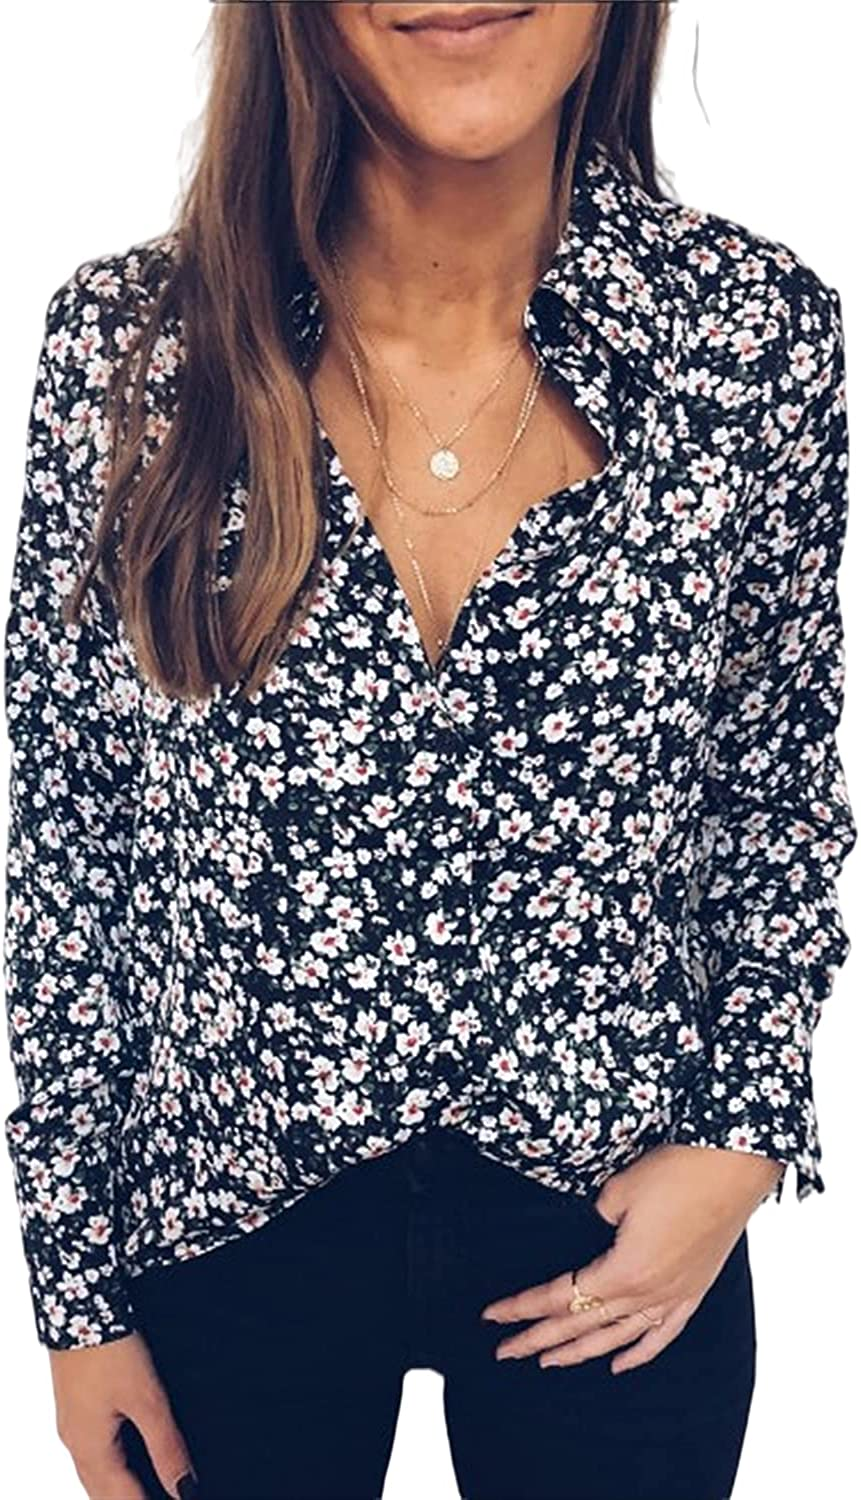 Guteidee Women's Fall Lace Crochet Eyelet V Neck Flowy Long Sleeve Shirts for Women Blouses Solid Casual Loose Tshirts Tops